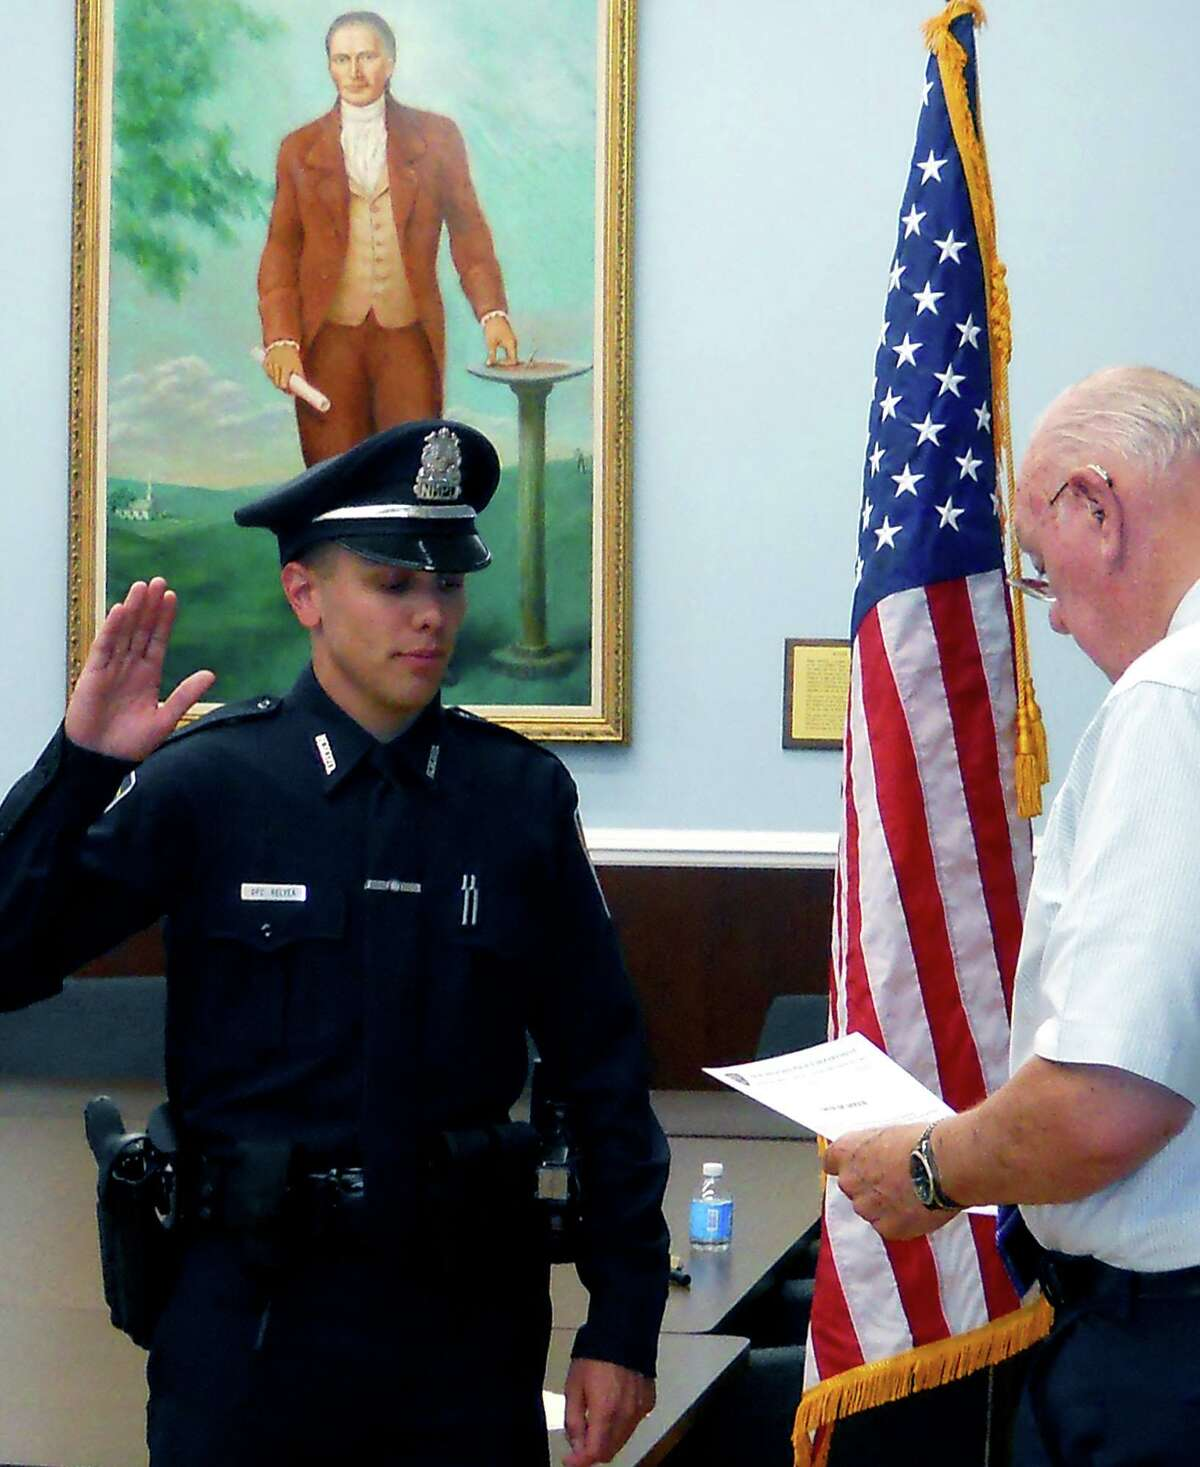 In this file photo, Alexander Relyea is sworn in as a New Milford police officer in July 2012. He joined the Danbury Police Department two years later.